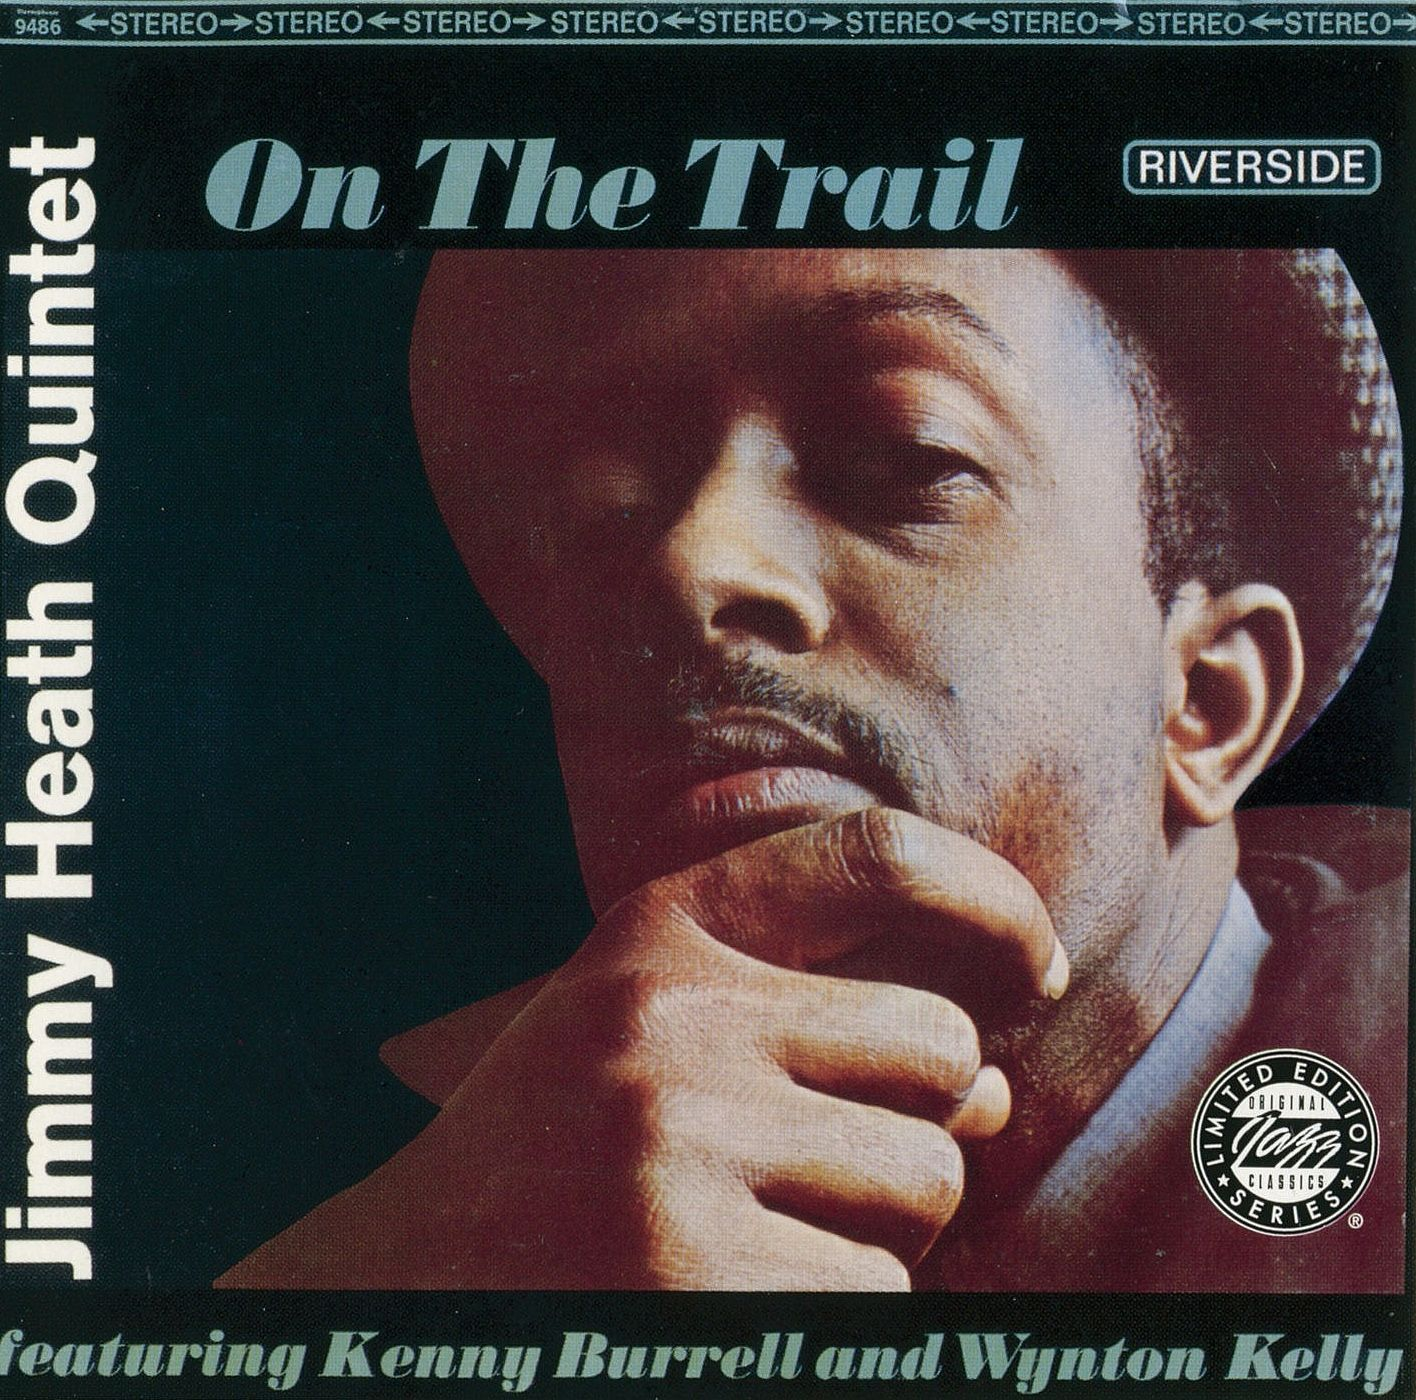 jimmy heath - on the trail (sleeve art)